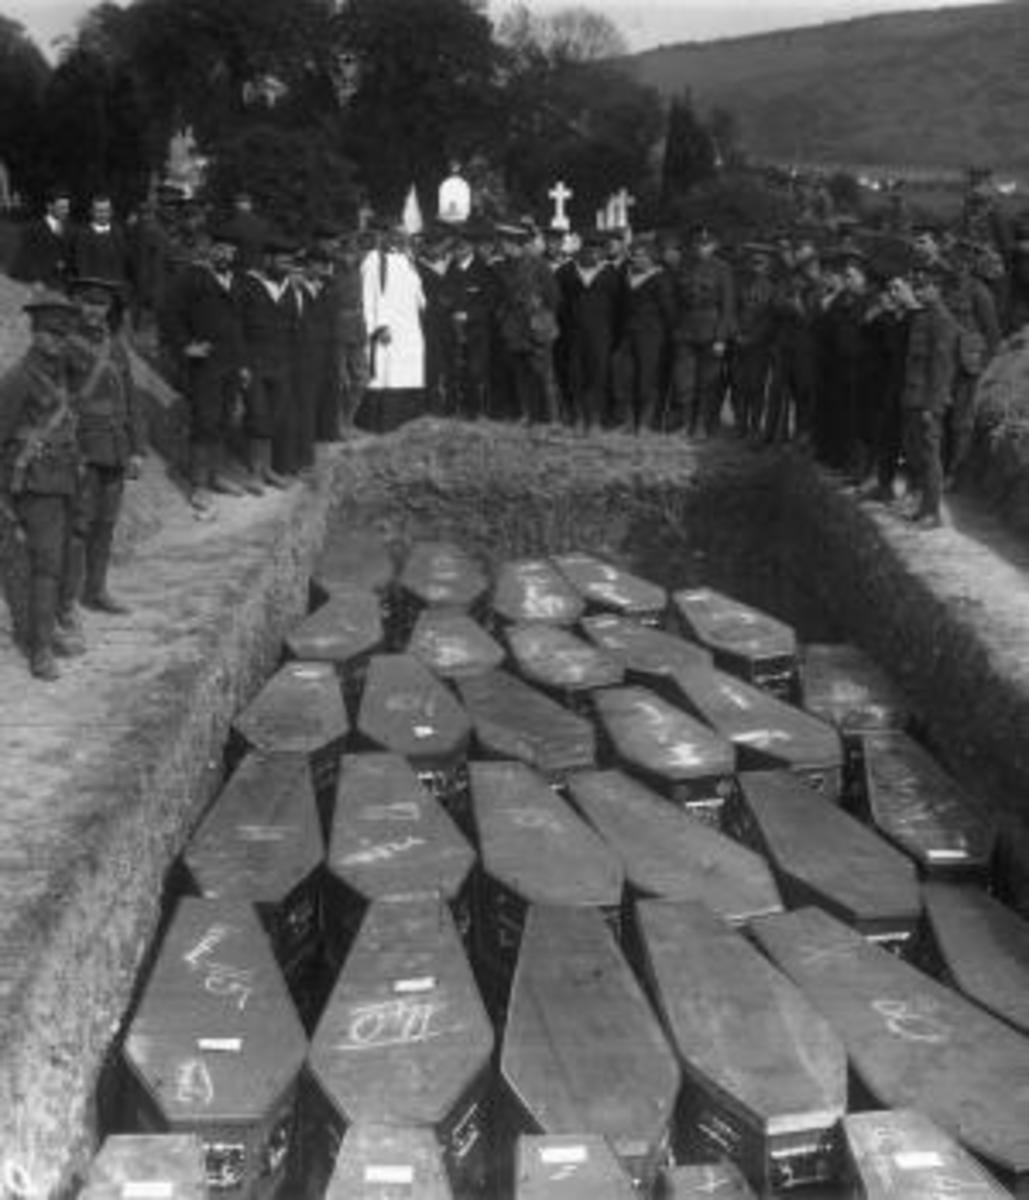 Servicemen attend a mass funeral in Cobh, County Cork, Ireland for victims of the Lusitania disaster. (Credit: Topical Press Agency/Getty Images)